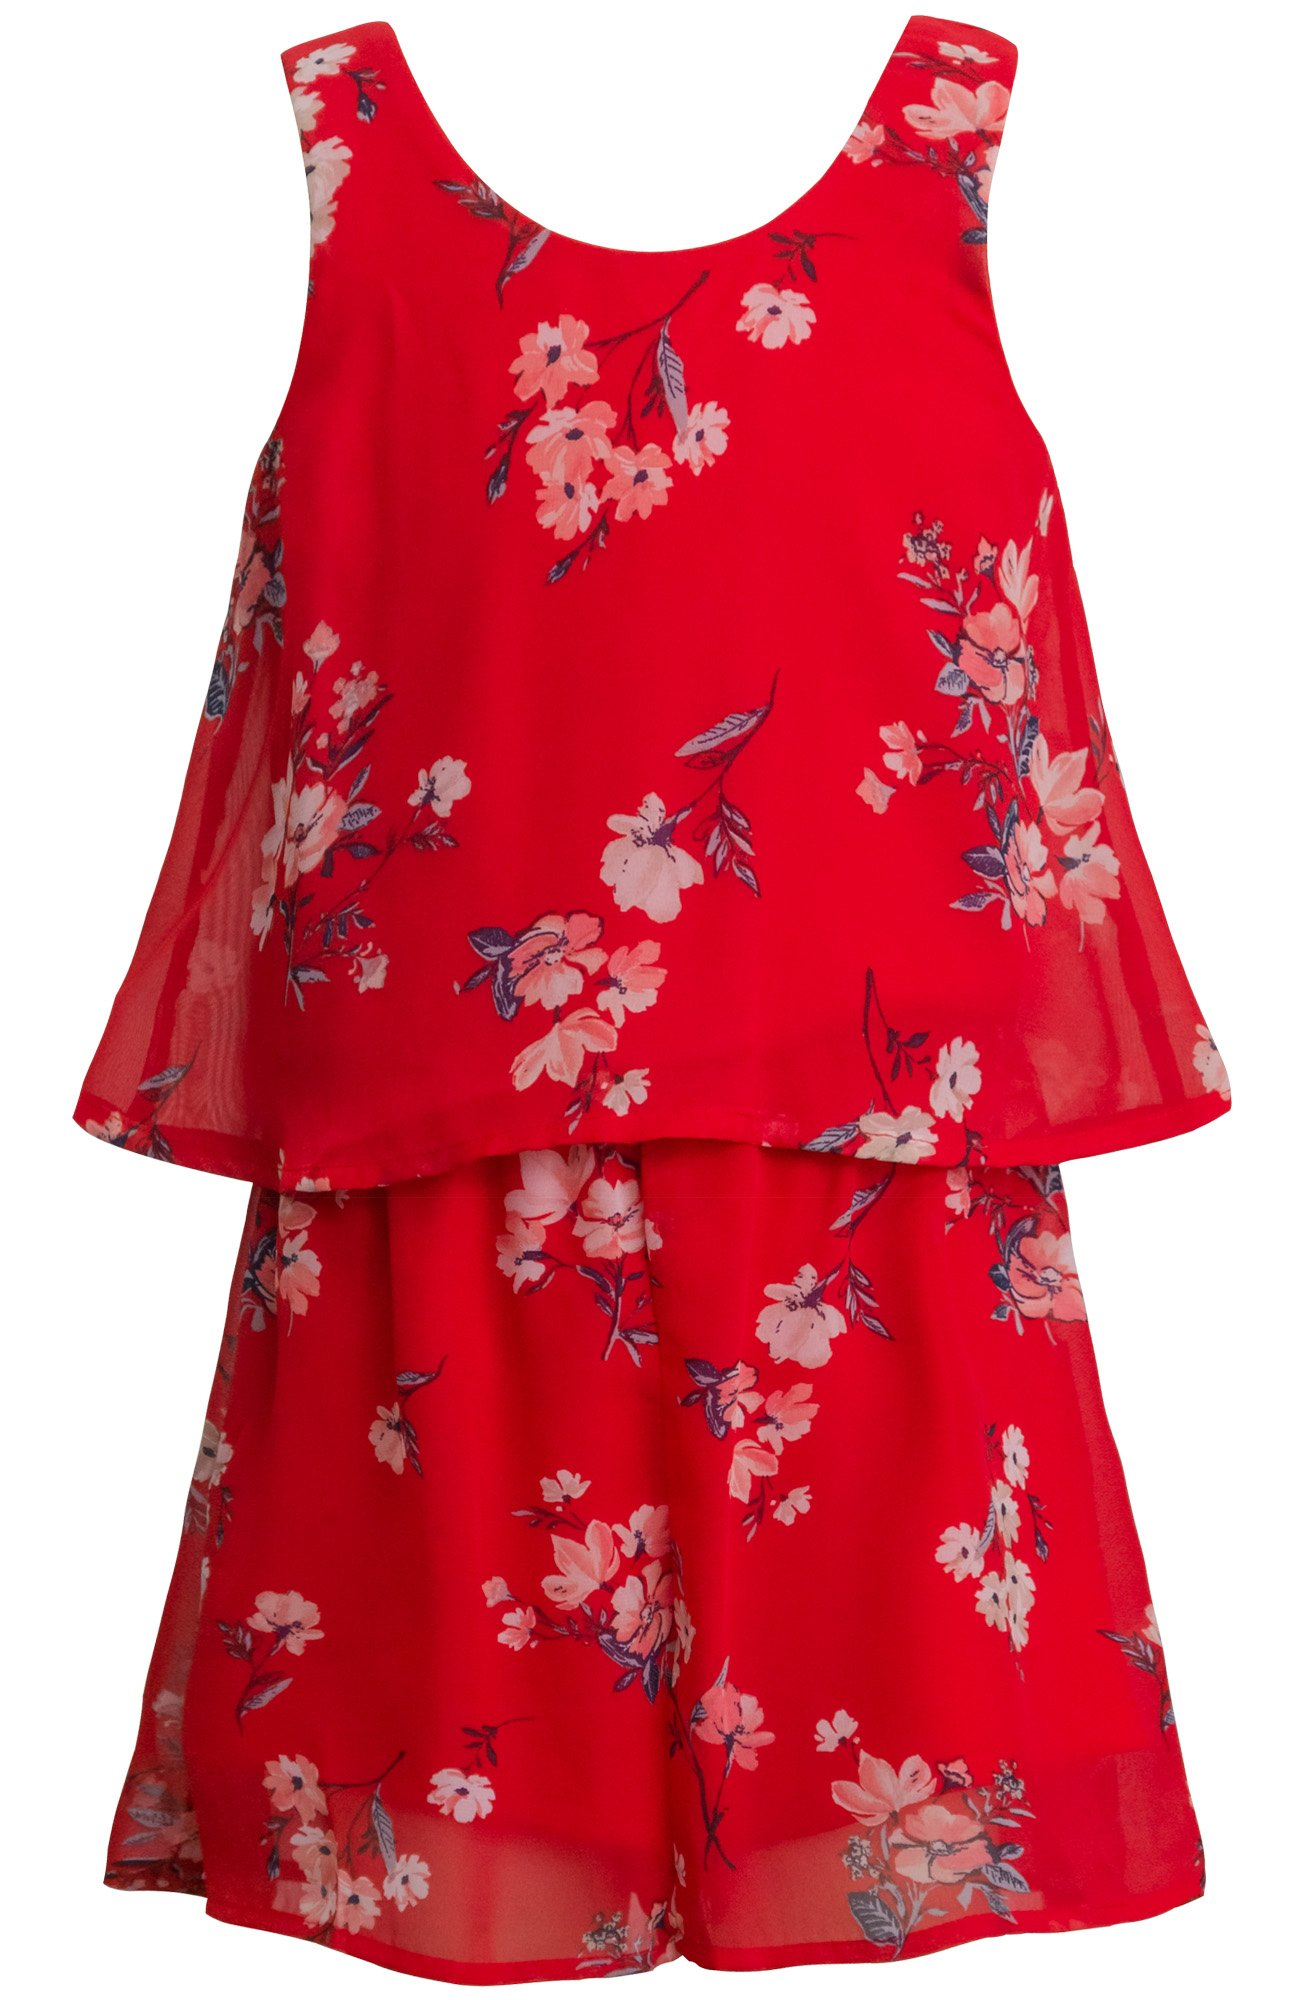 Truly Me, Charming Rompers (with Many Options), 4-6X, 7-16 (7, Red Multi)